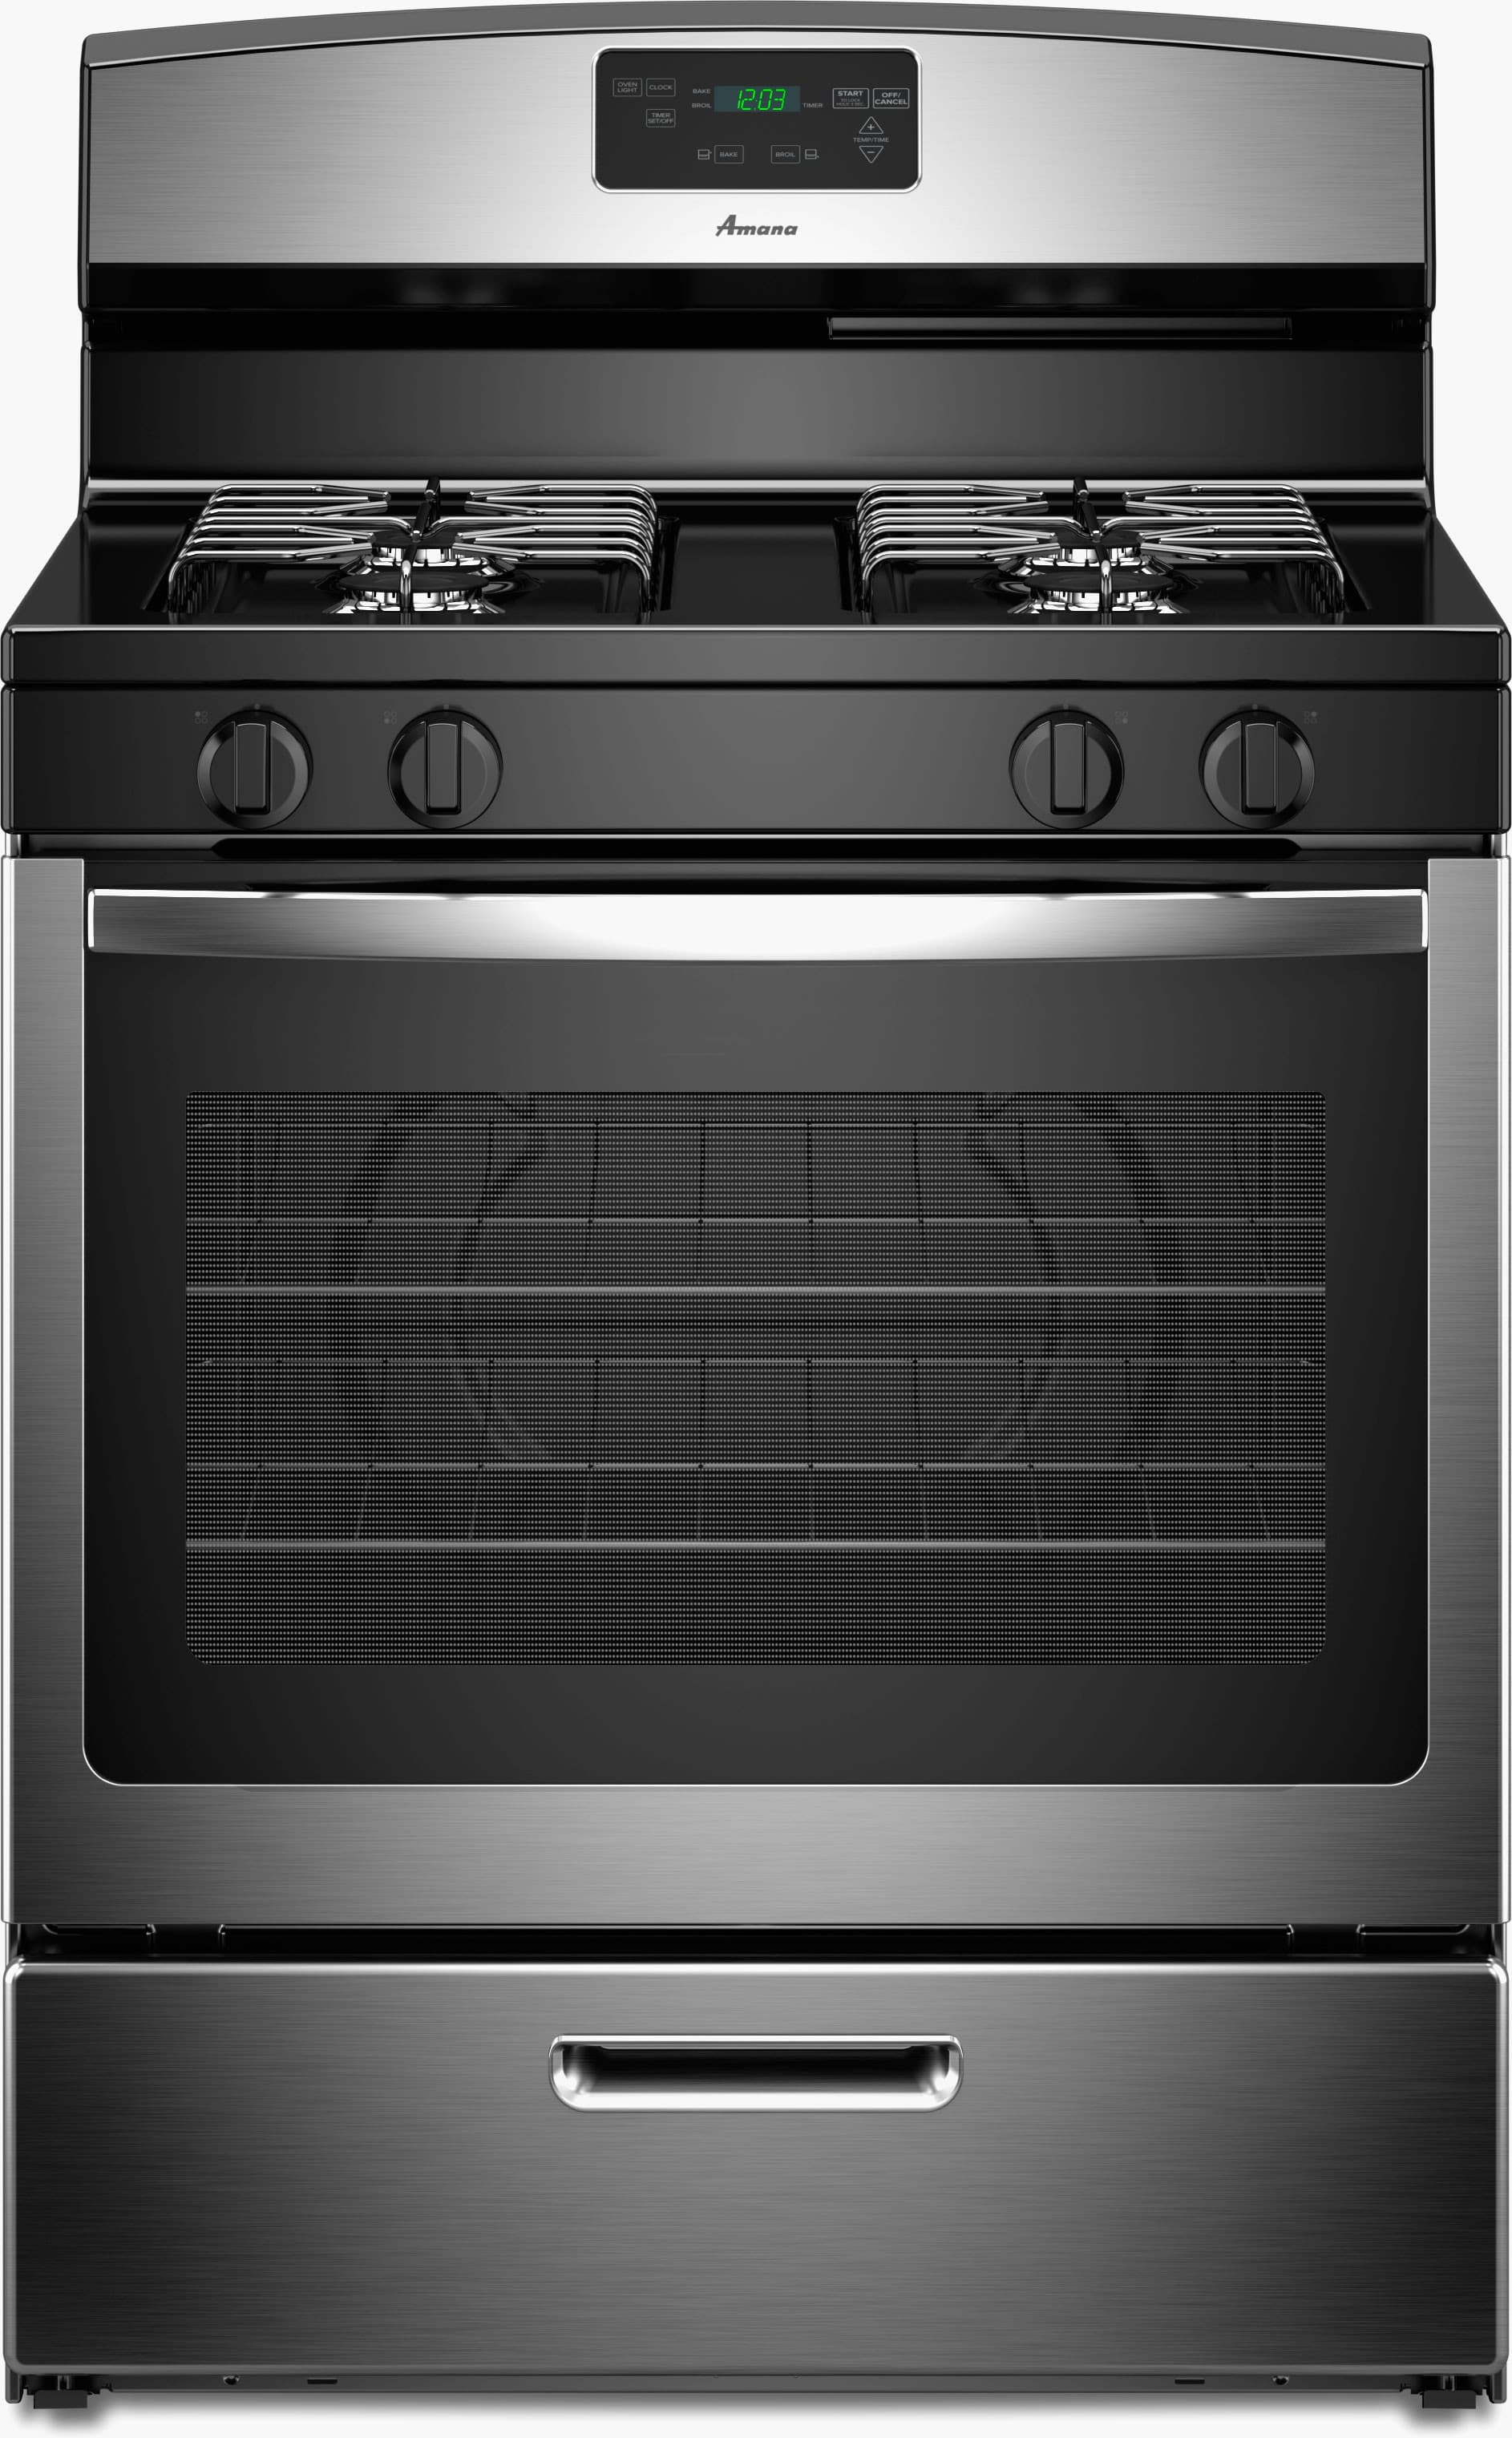 Amana Agr5330bas 30 Inch Freestanding Gas Range With